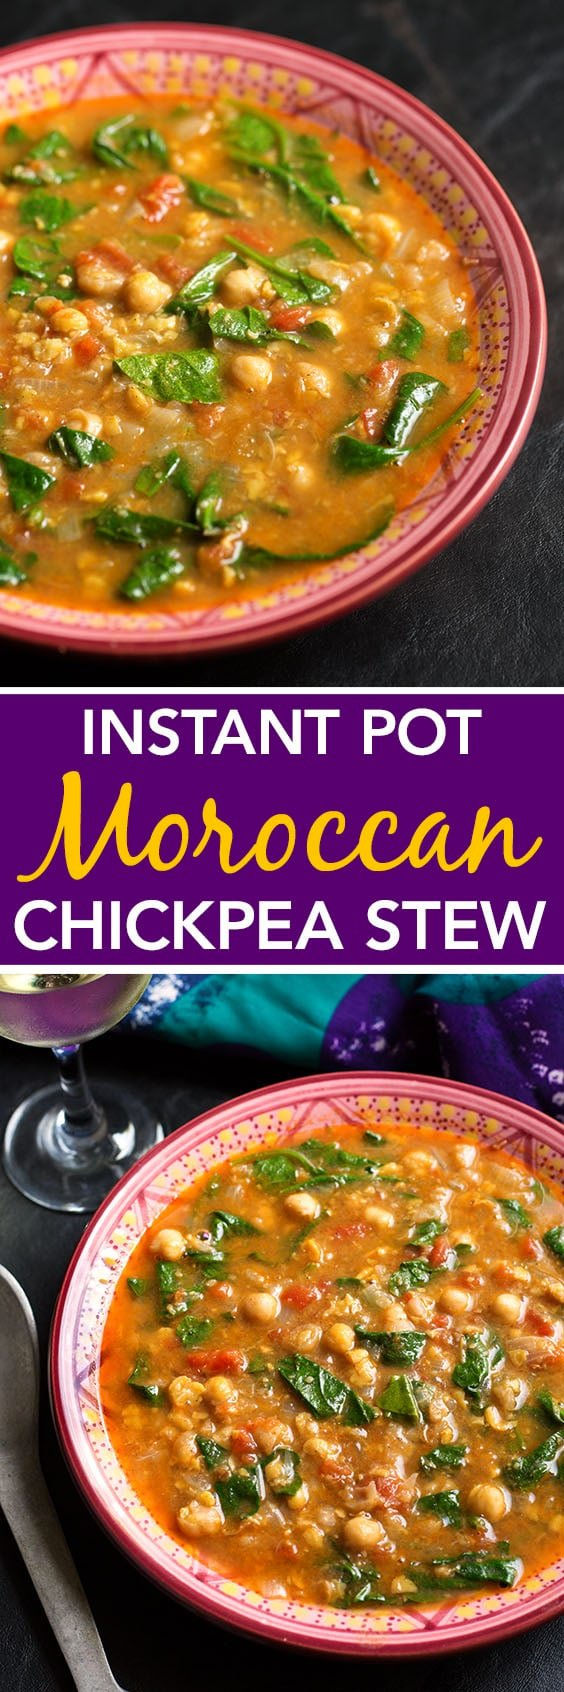 Instant Pot Moroccan Chickpea Stew tastes amazing! Easy and inexpensive to make and so healthy! simplyhappyfoodie.com #instantpotrecipes #instantpot #instantpotchickpeas #instantpotchickpeastew